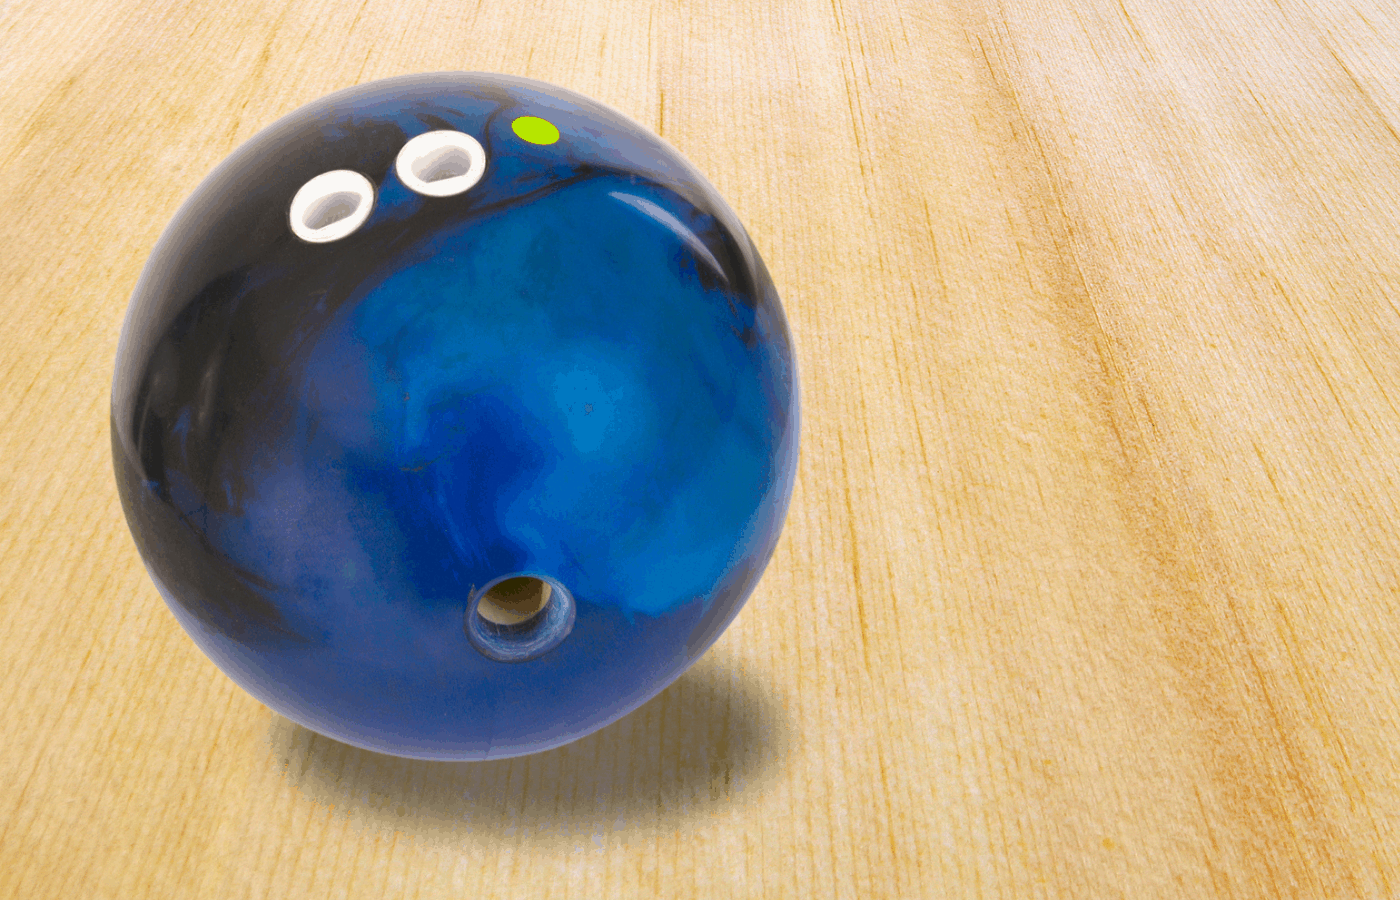 How to Maintain a Urethane Bowling Ball